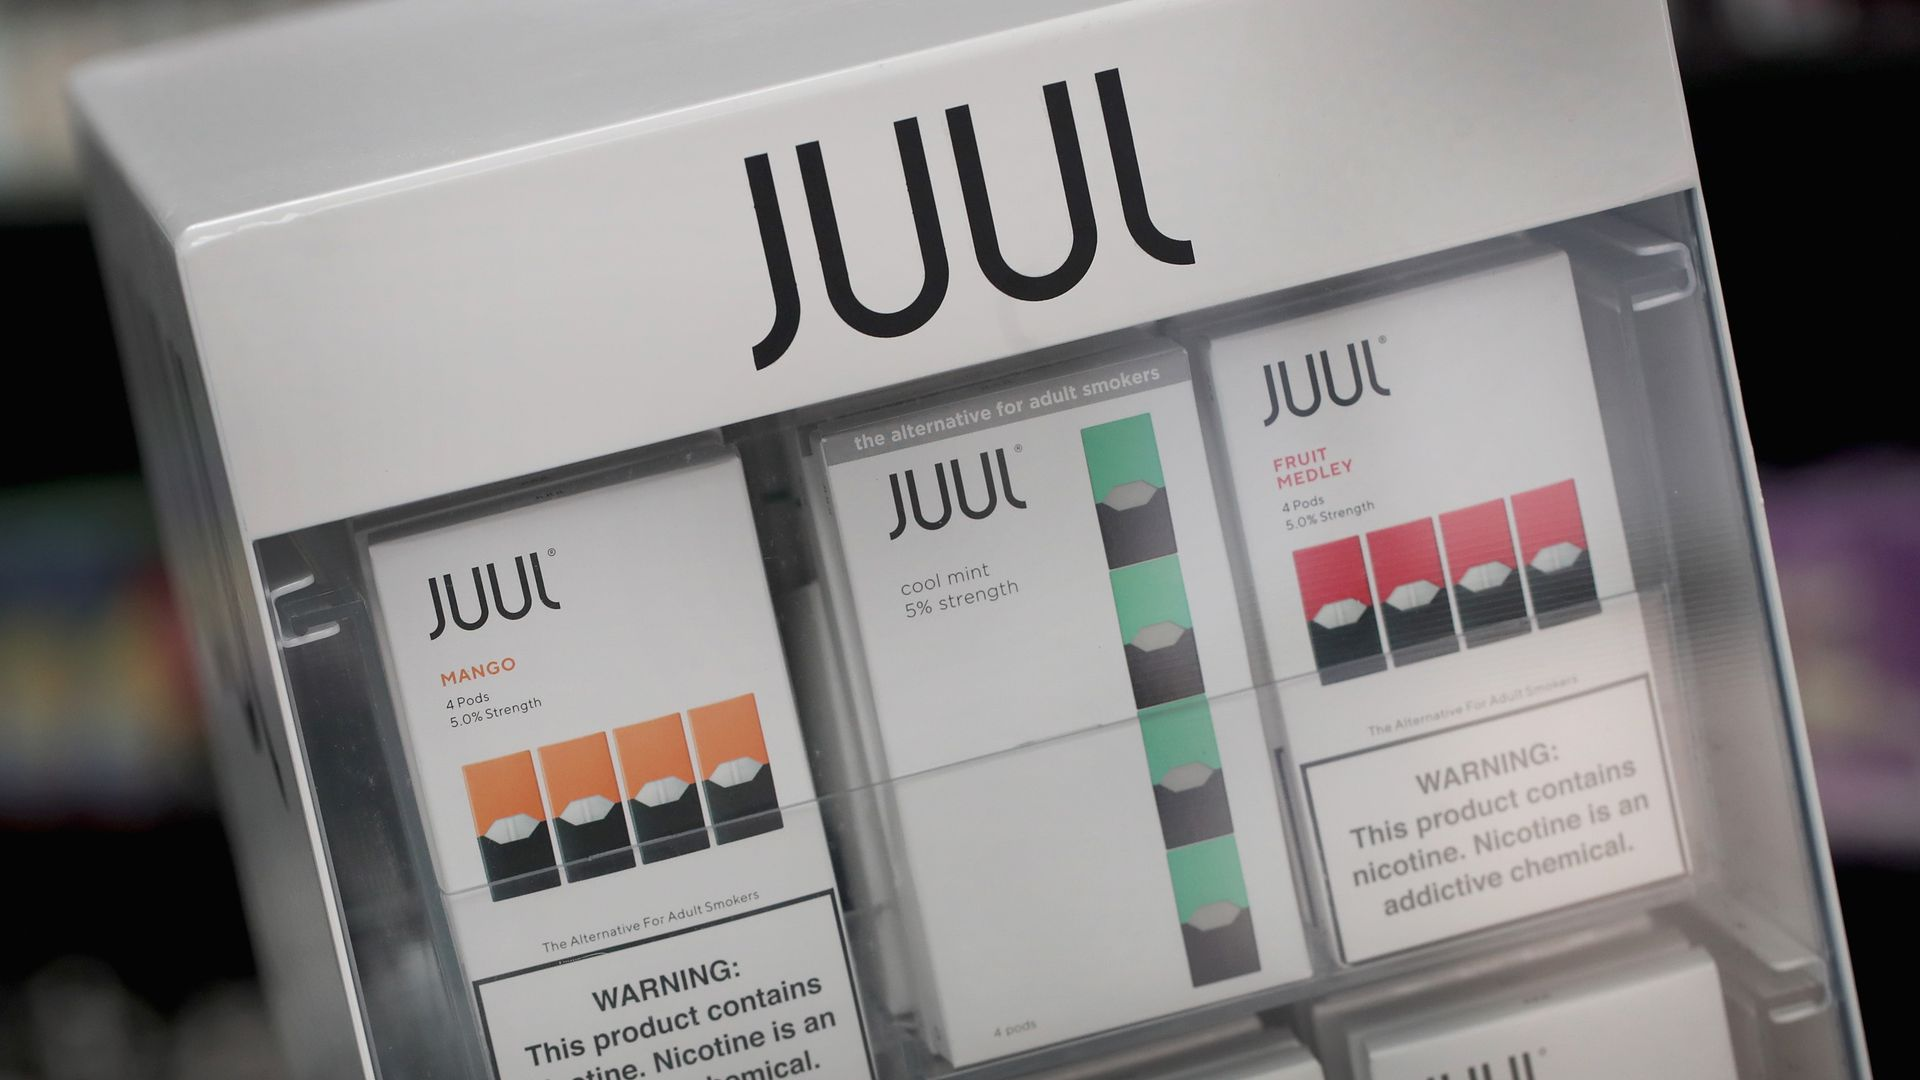 Juul vaping pods being sold